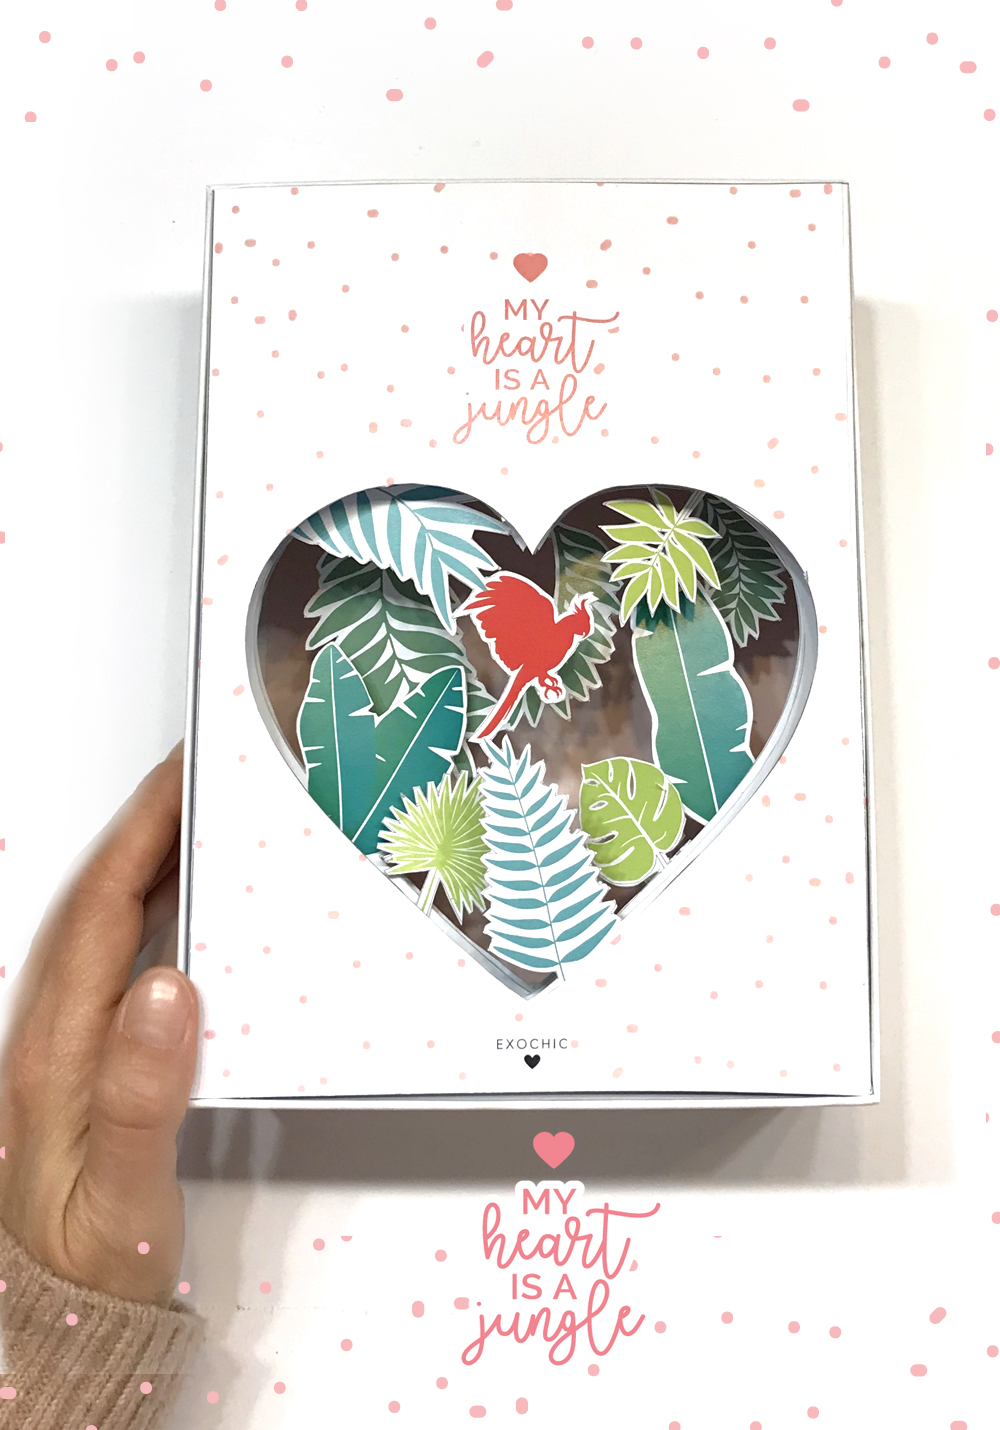 Air Chic Design:disque externe:EXOChic:1 -POSTS:1 - ARTICLES:2018:02 - FÉVRIER:03 DIY Box ST VALENTIN+ carte:image blog DIY Shadow box exochic:DIY shadow box exochic 7.jpg